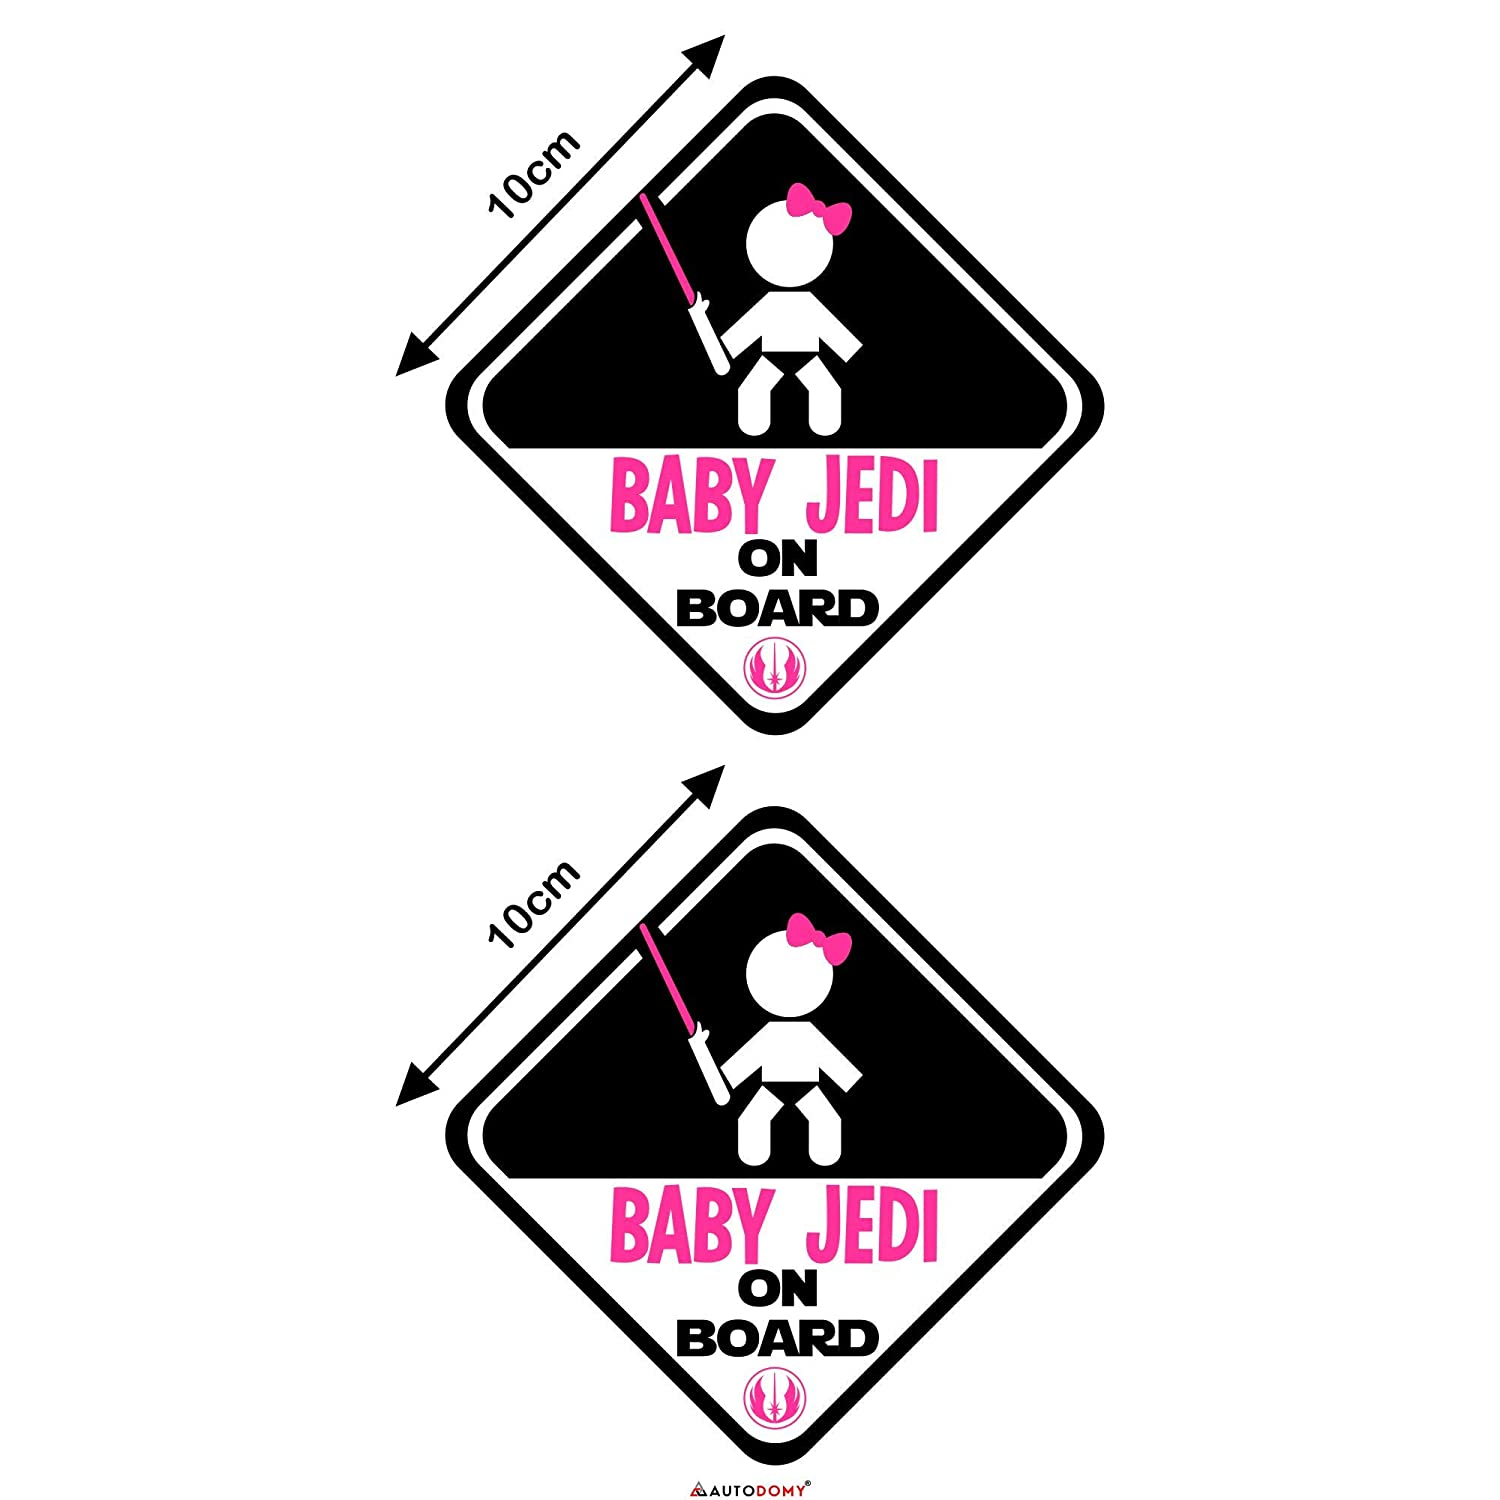 Autodomy Stickers Baby Jedi Girl Star Wars Baby On Board Baby on Board Baby in Car Pack of 2 Uso Interno